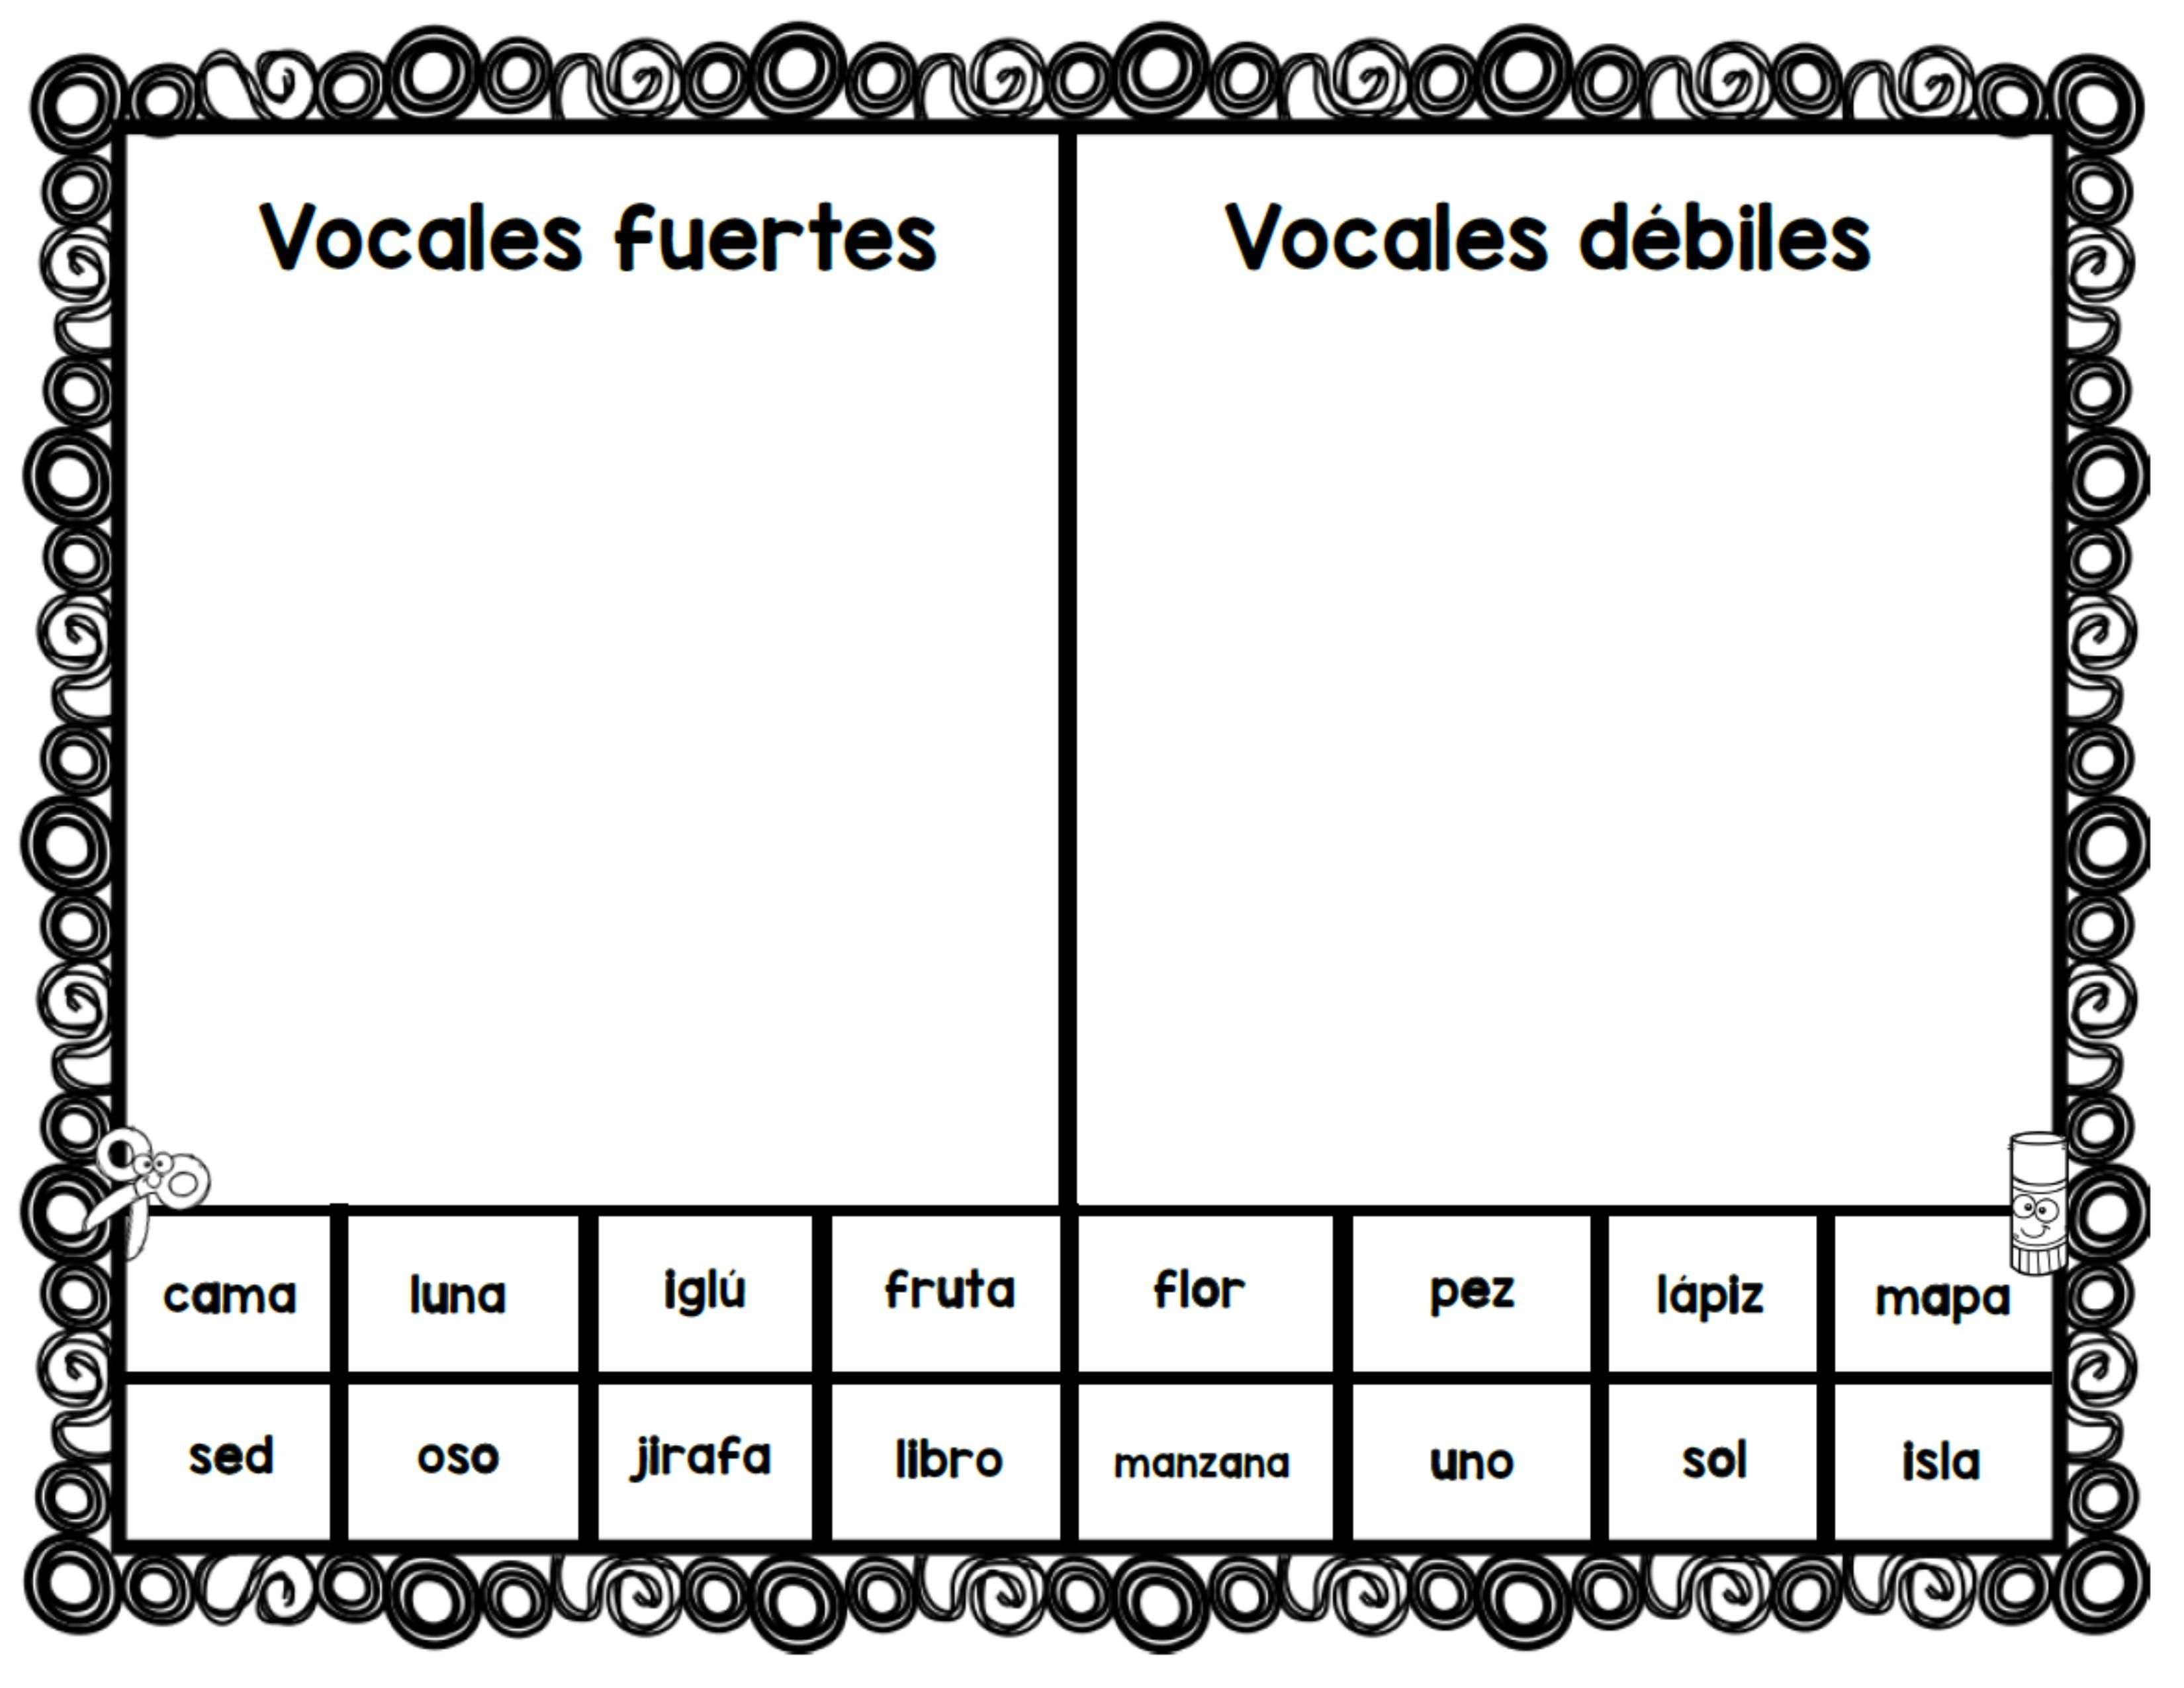 Vocales Fuertes Y Debiles Strong And Weak Vowels In Spanish